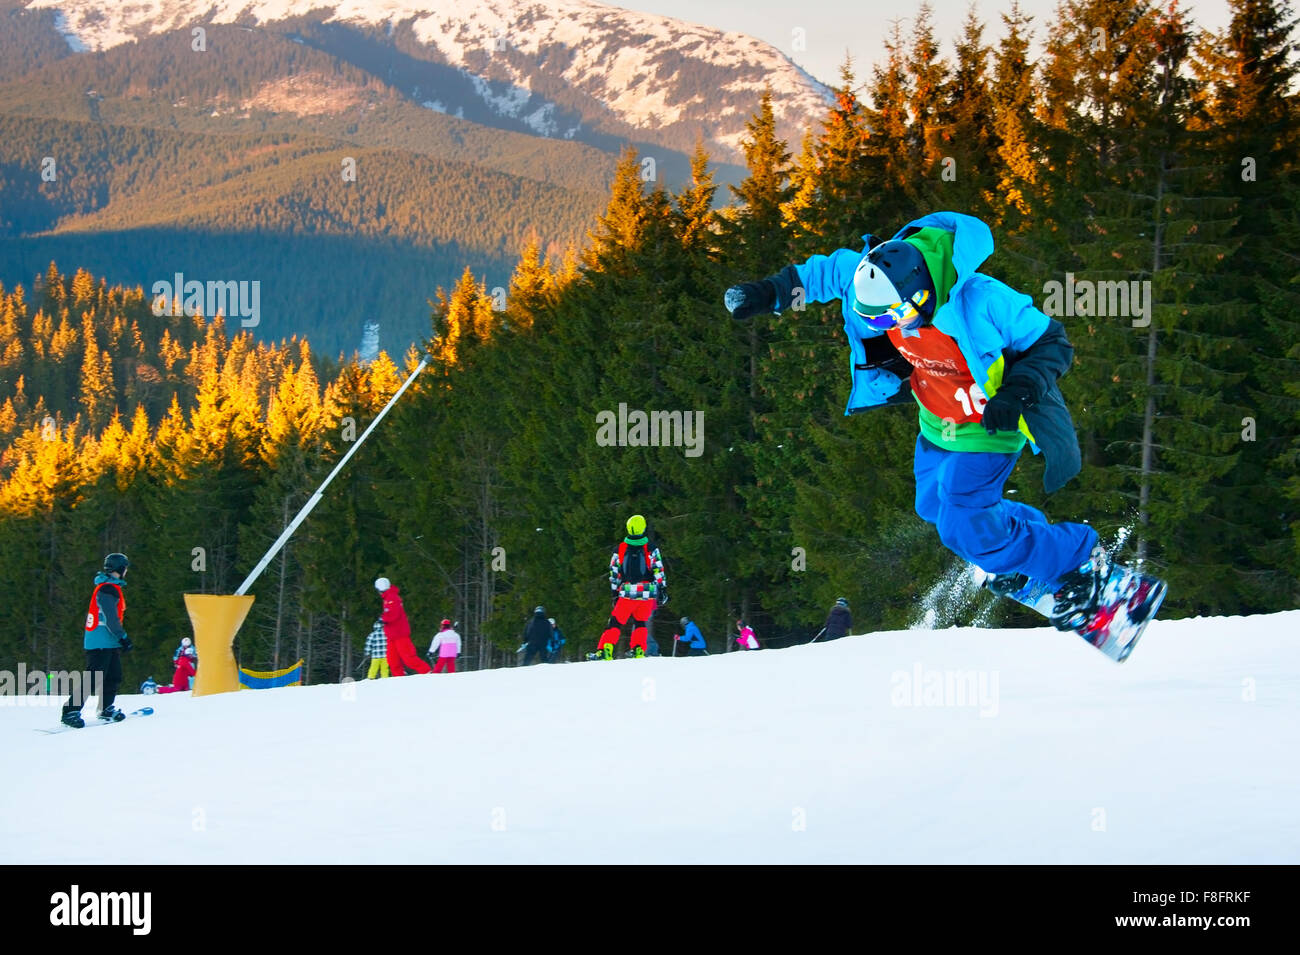 Snowboarder jumping in Bukovel ski resort. Bukovel is the most popular ski resort in Ukraine. Stock Photo